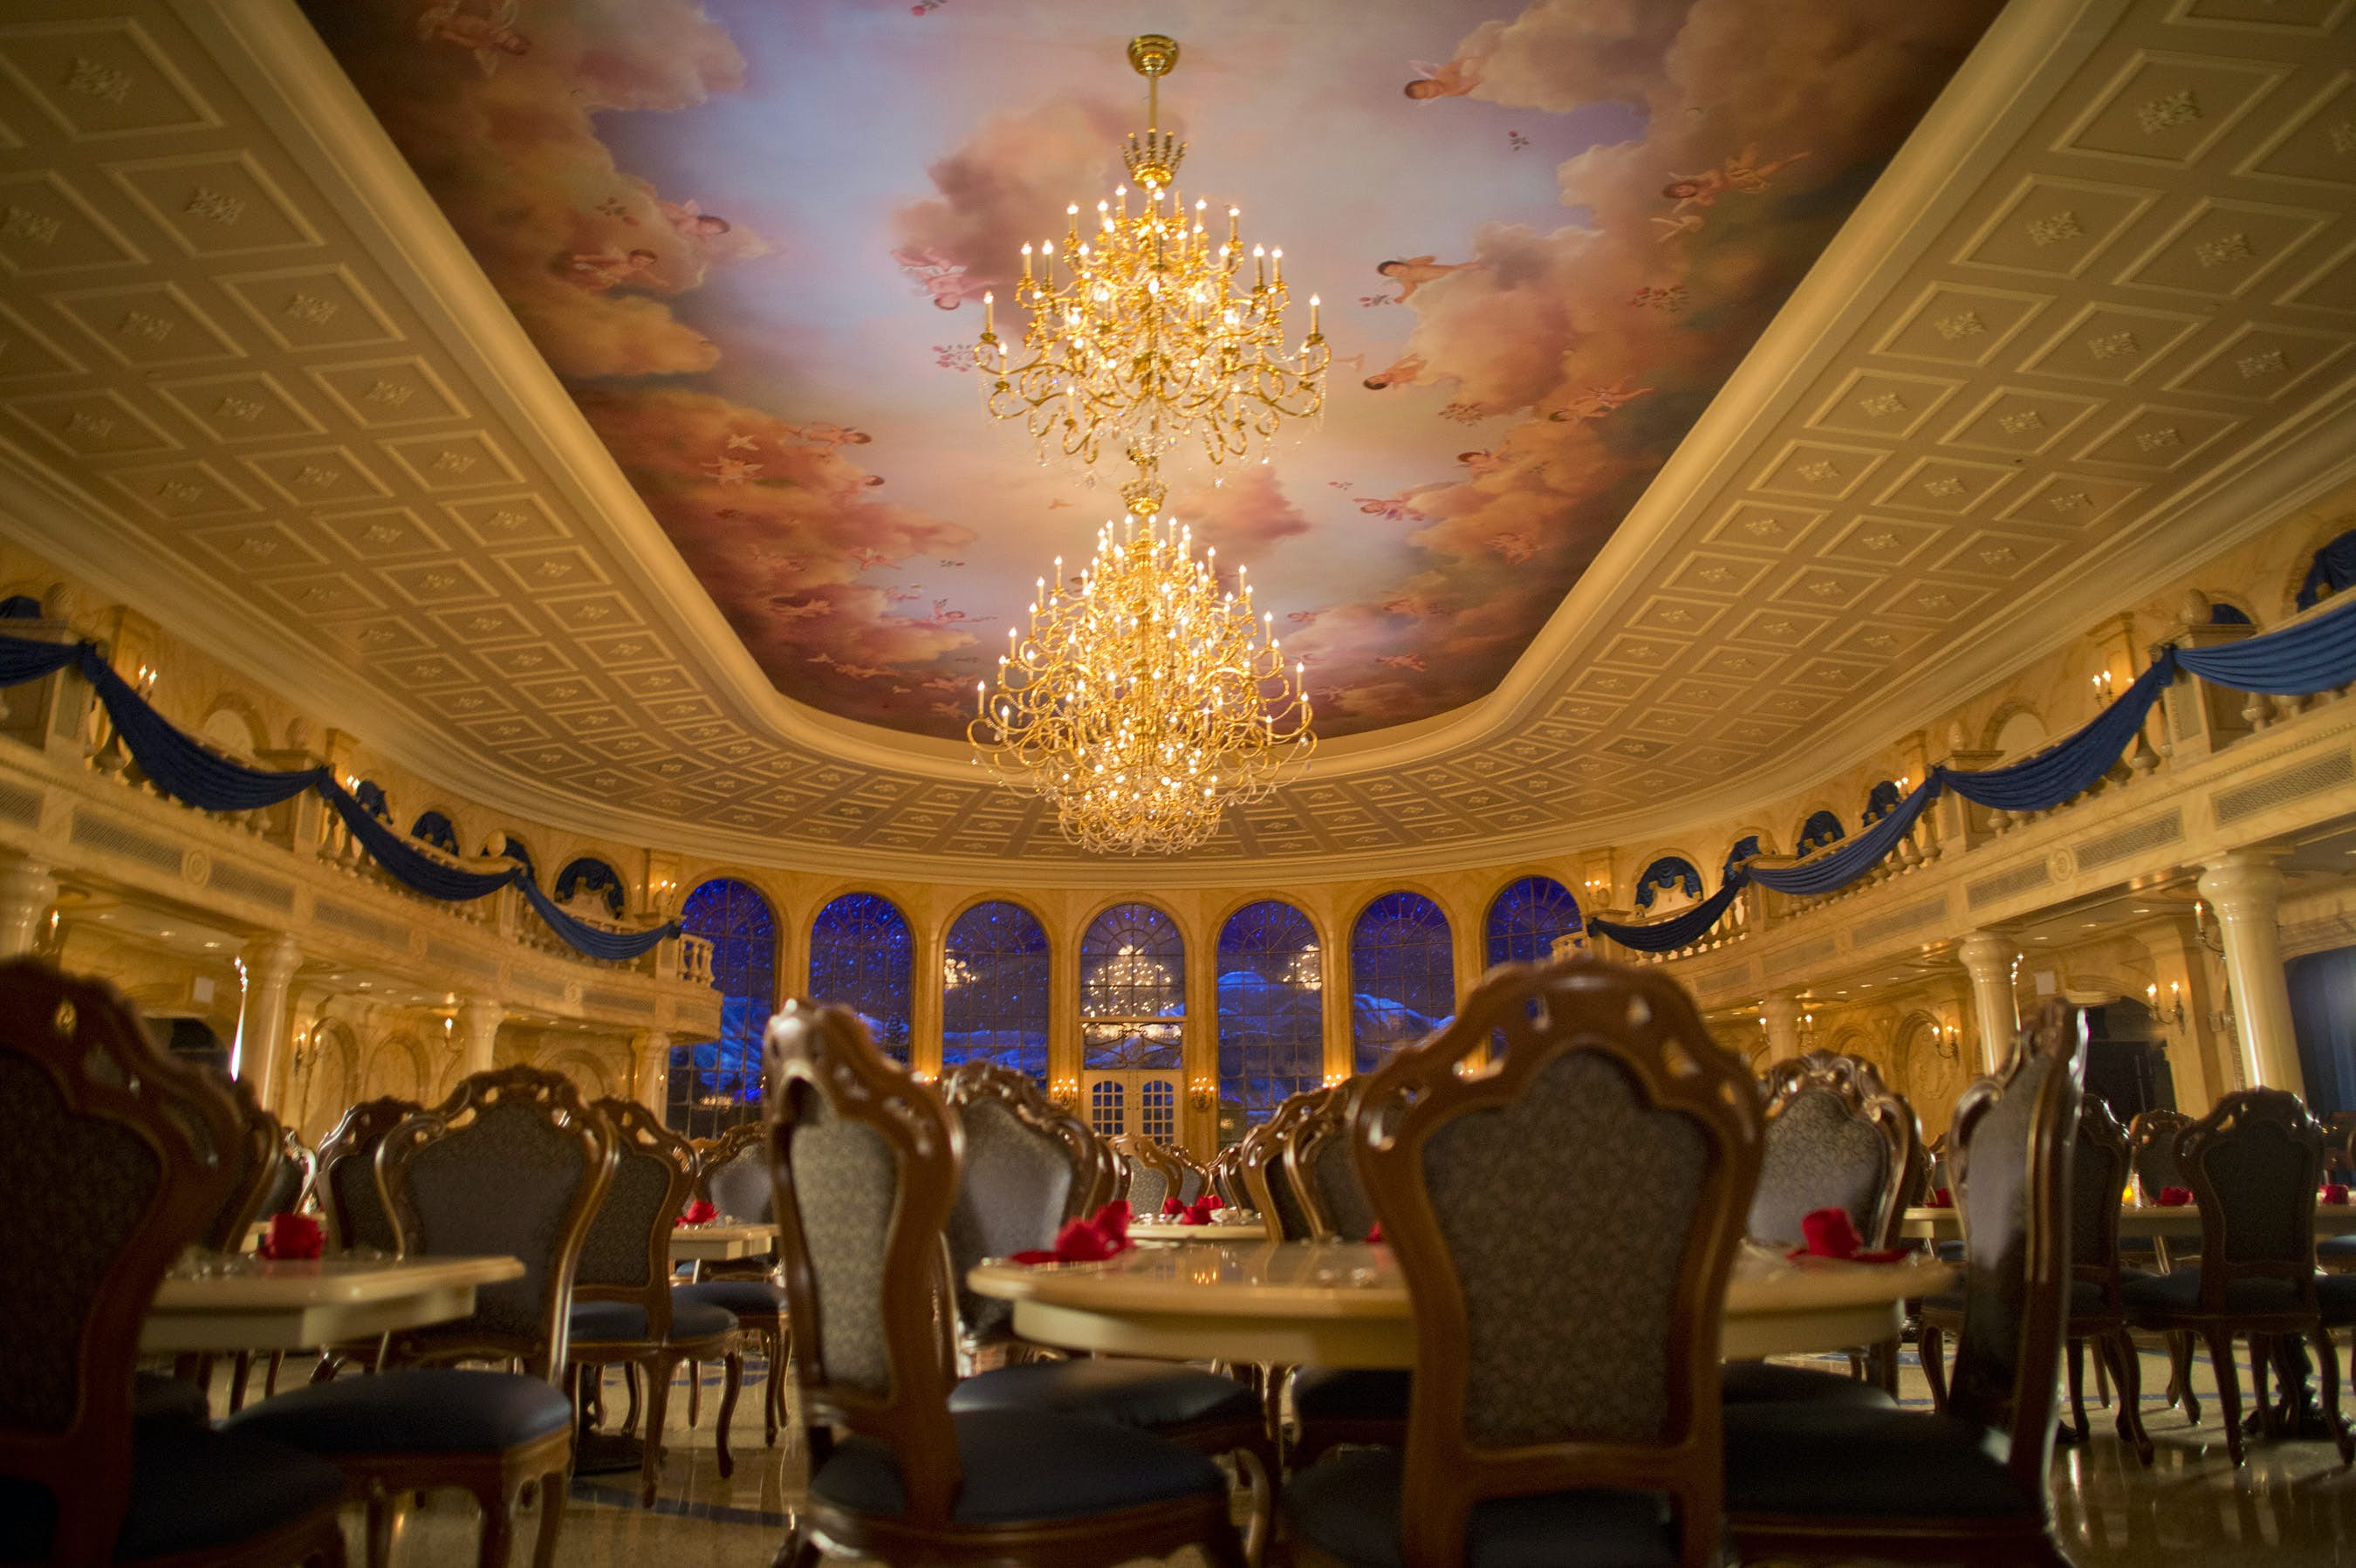 A replica of the ballroom from Disney's Beauty and the Beast, including high ceiling with clouds and cherubs painted on it and a sparkling chandelier